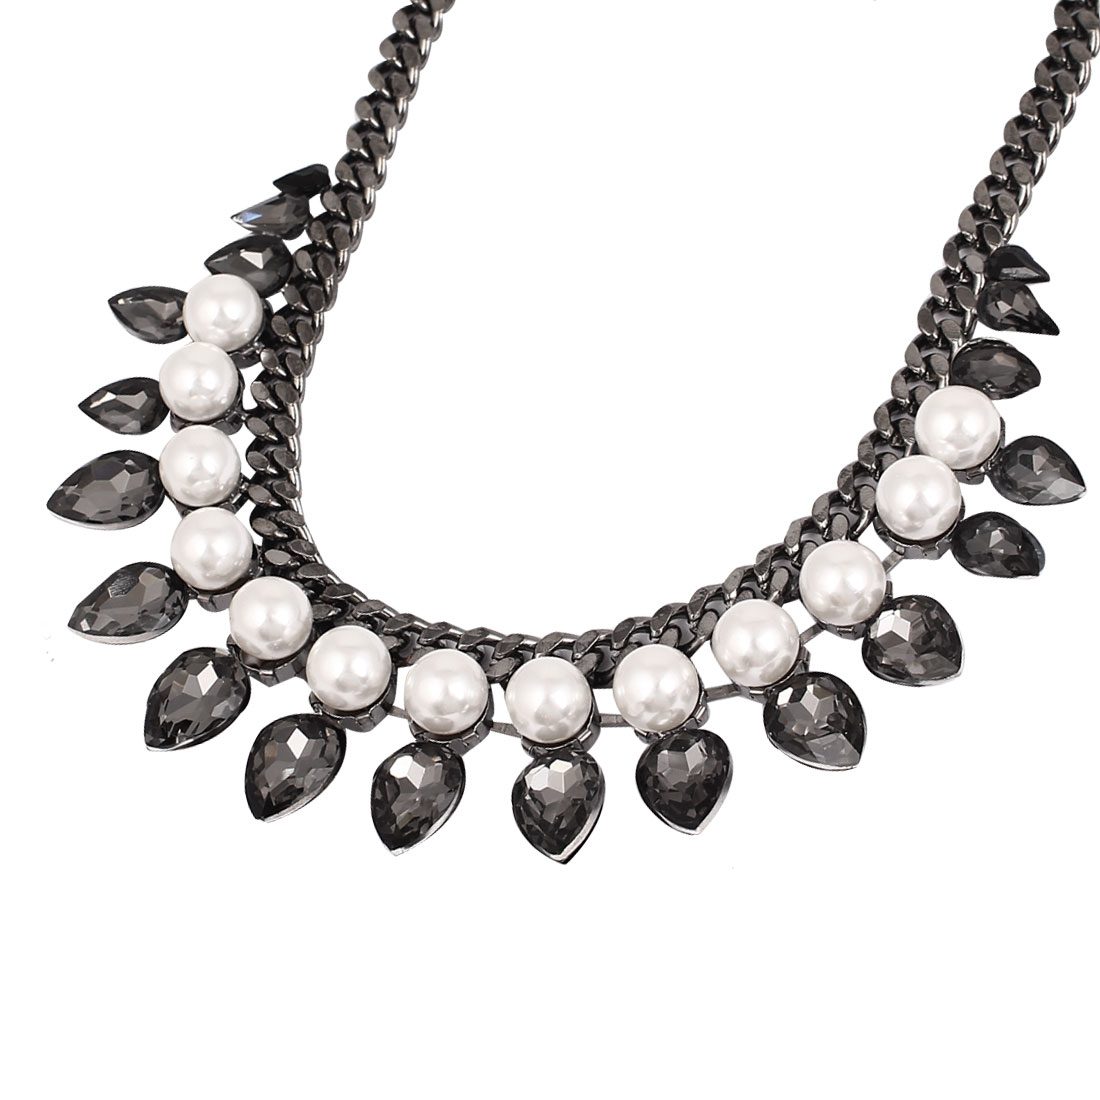 Lady Waterdrop Faux Crystal Pearl Adjustable Chunky Collar Bib Necklace Black